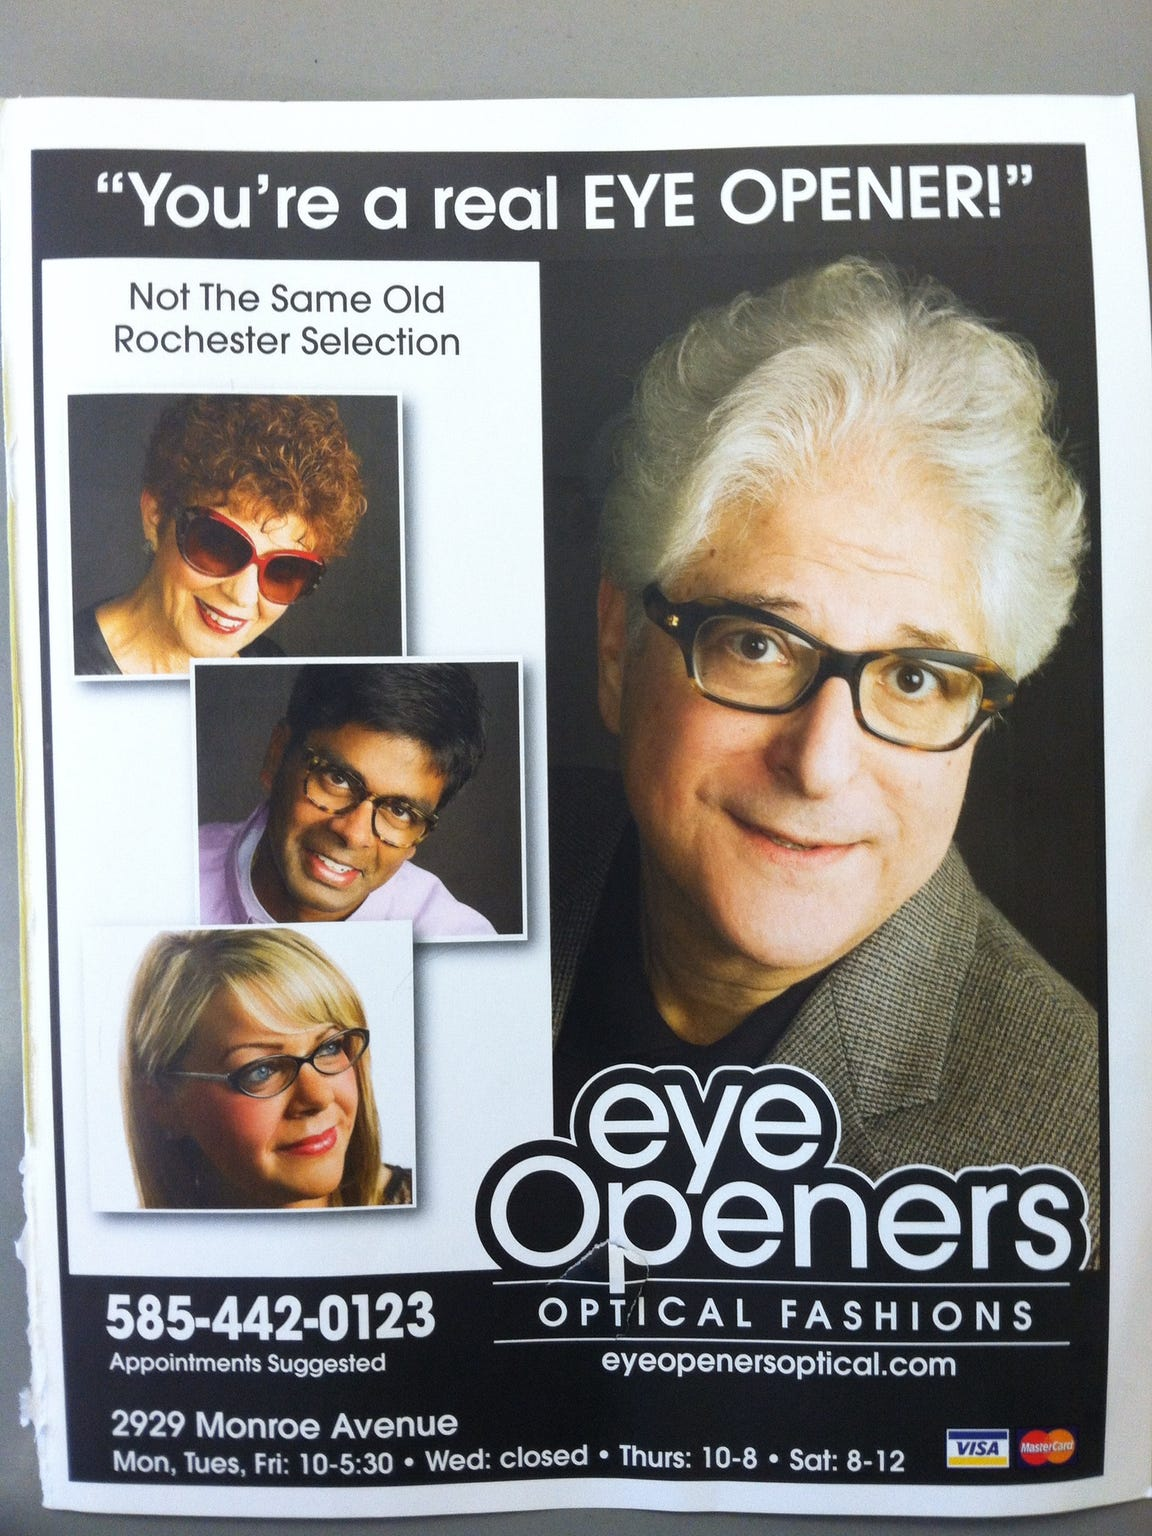 The Eye Openers ad that featured her future husband.